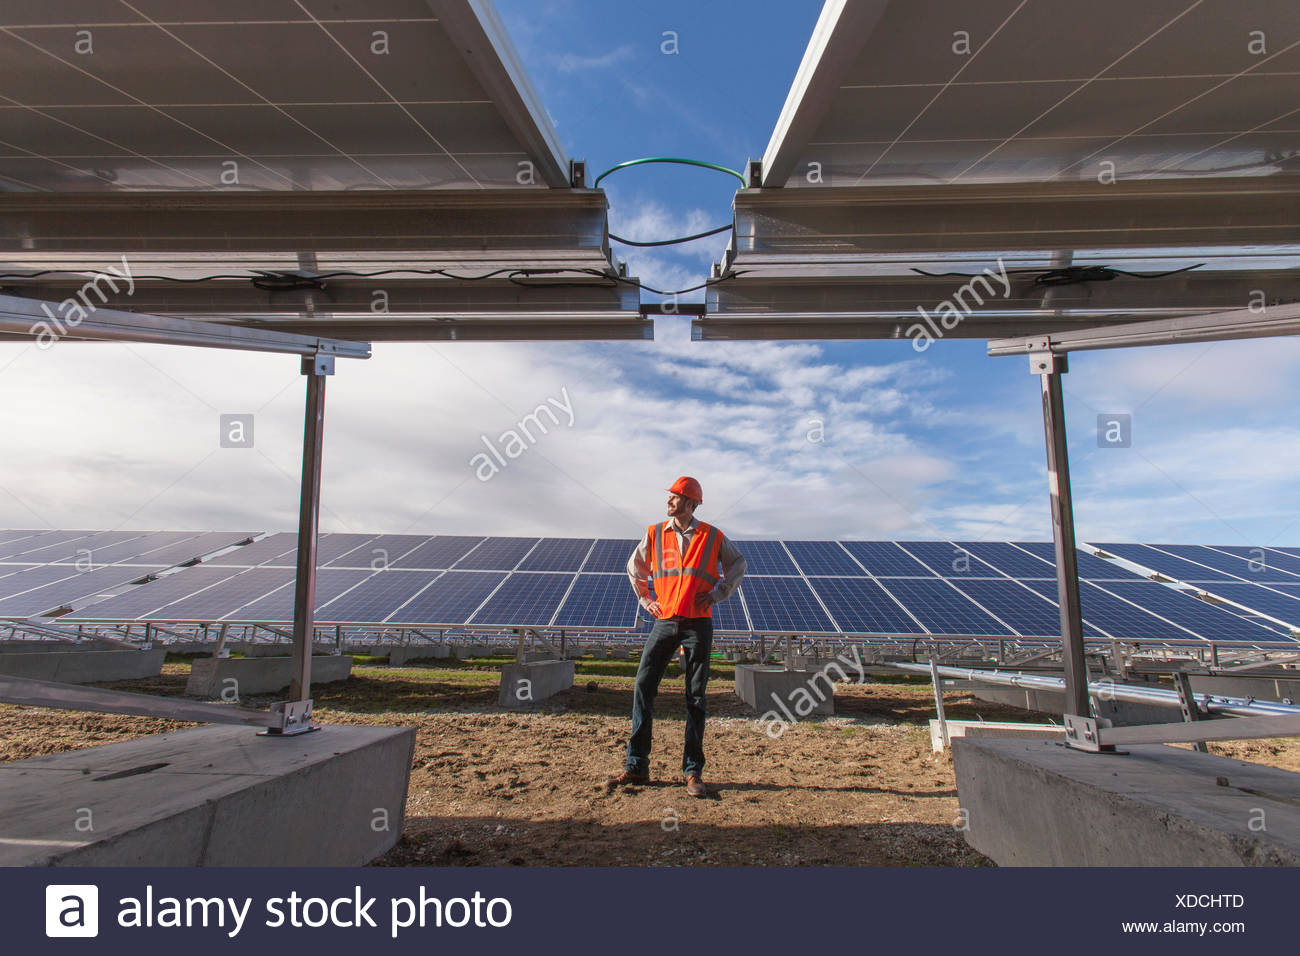 Power engineer standing in front of solar photovoltaic array - Stock Image